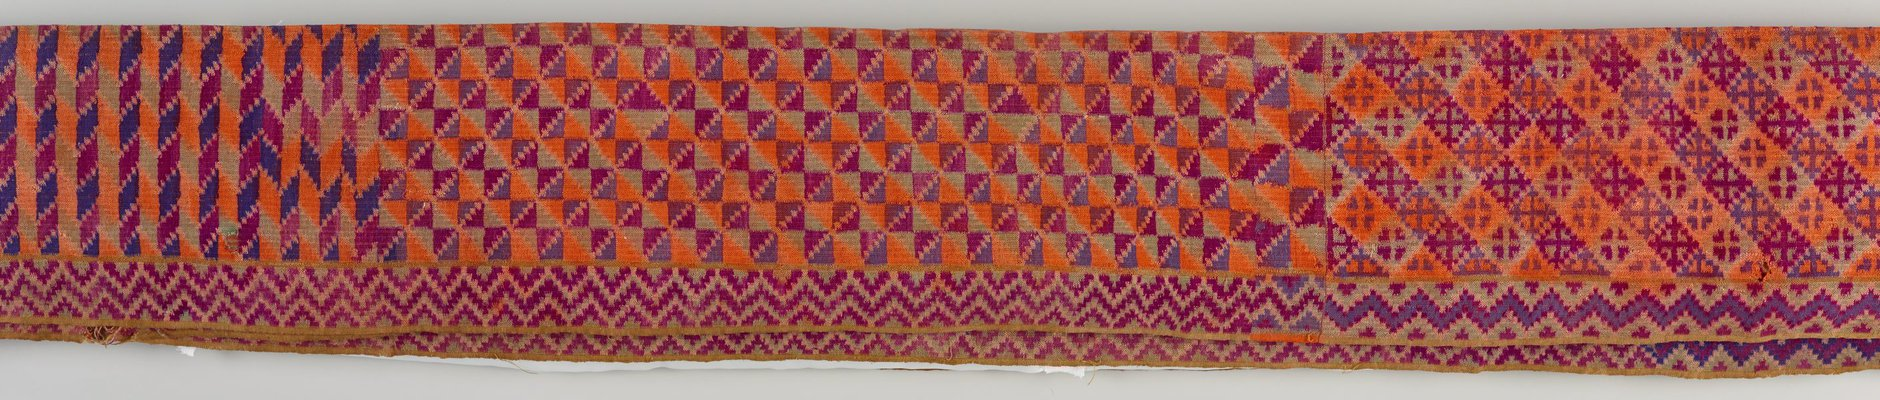 Alternate image of Men's waist cloth ( kandit) by Tausug